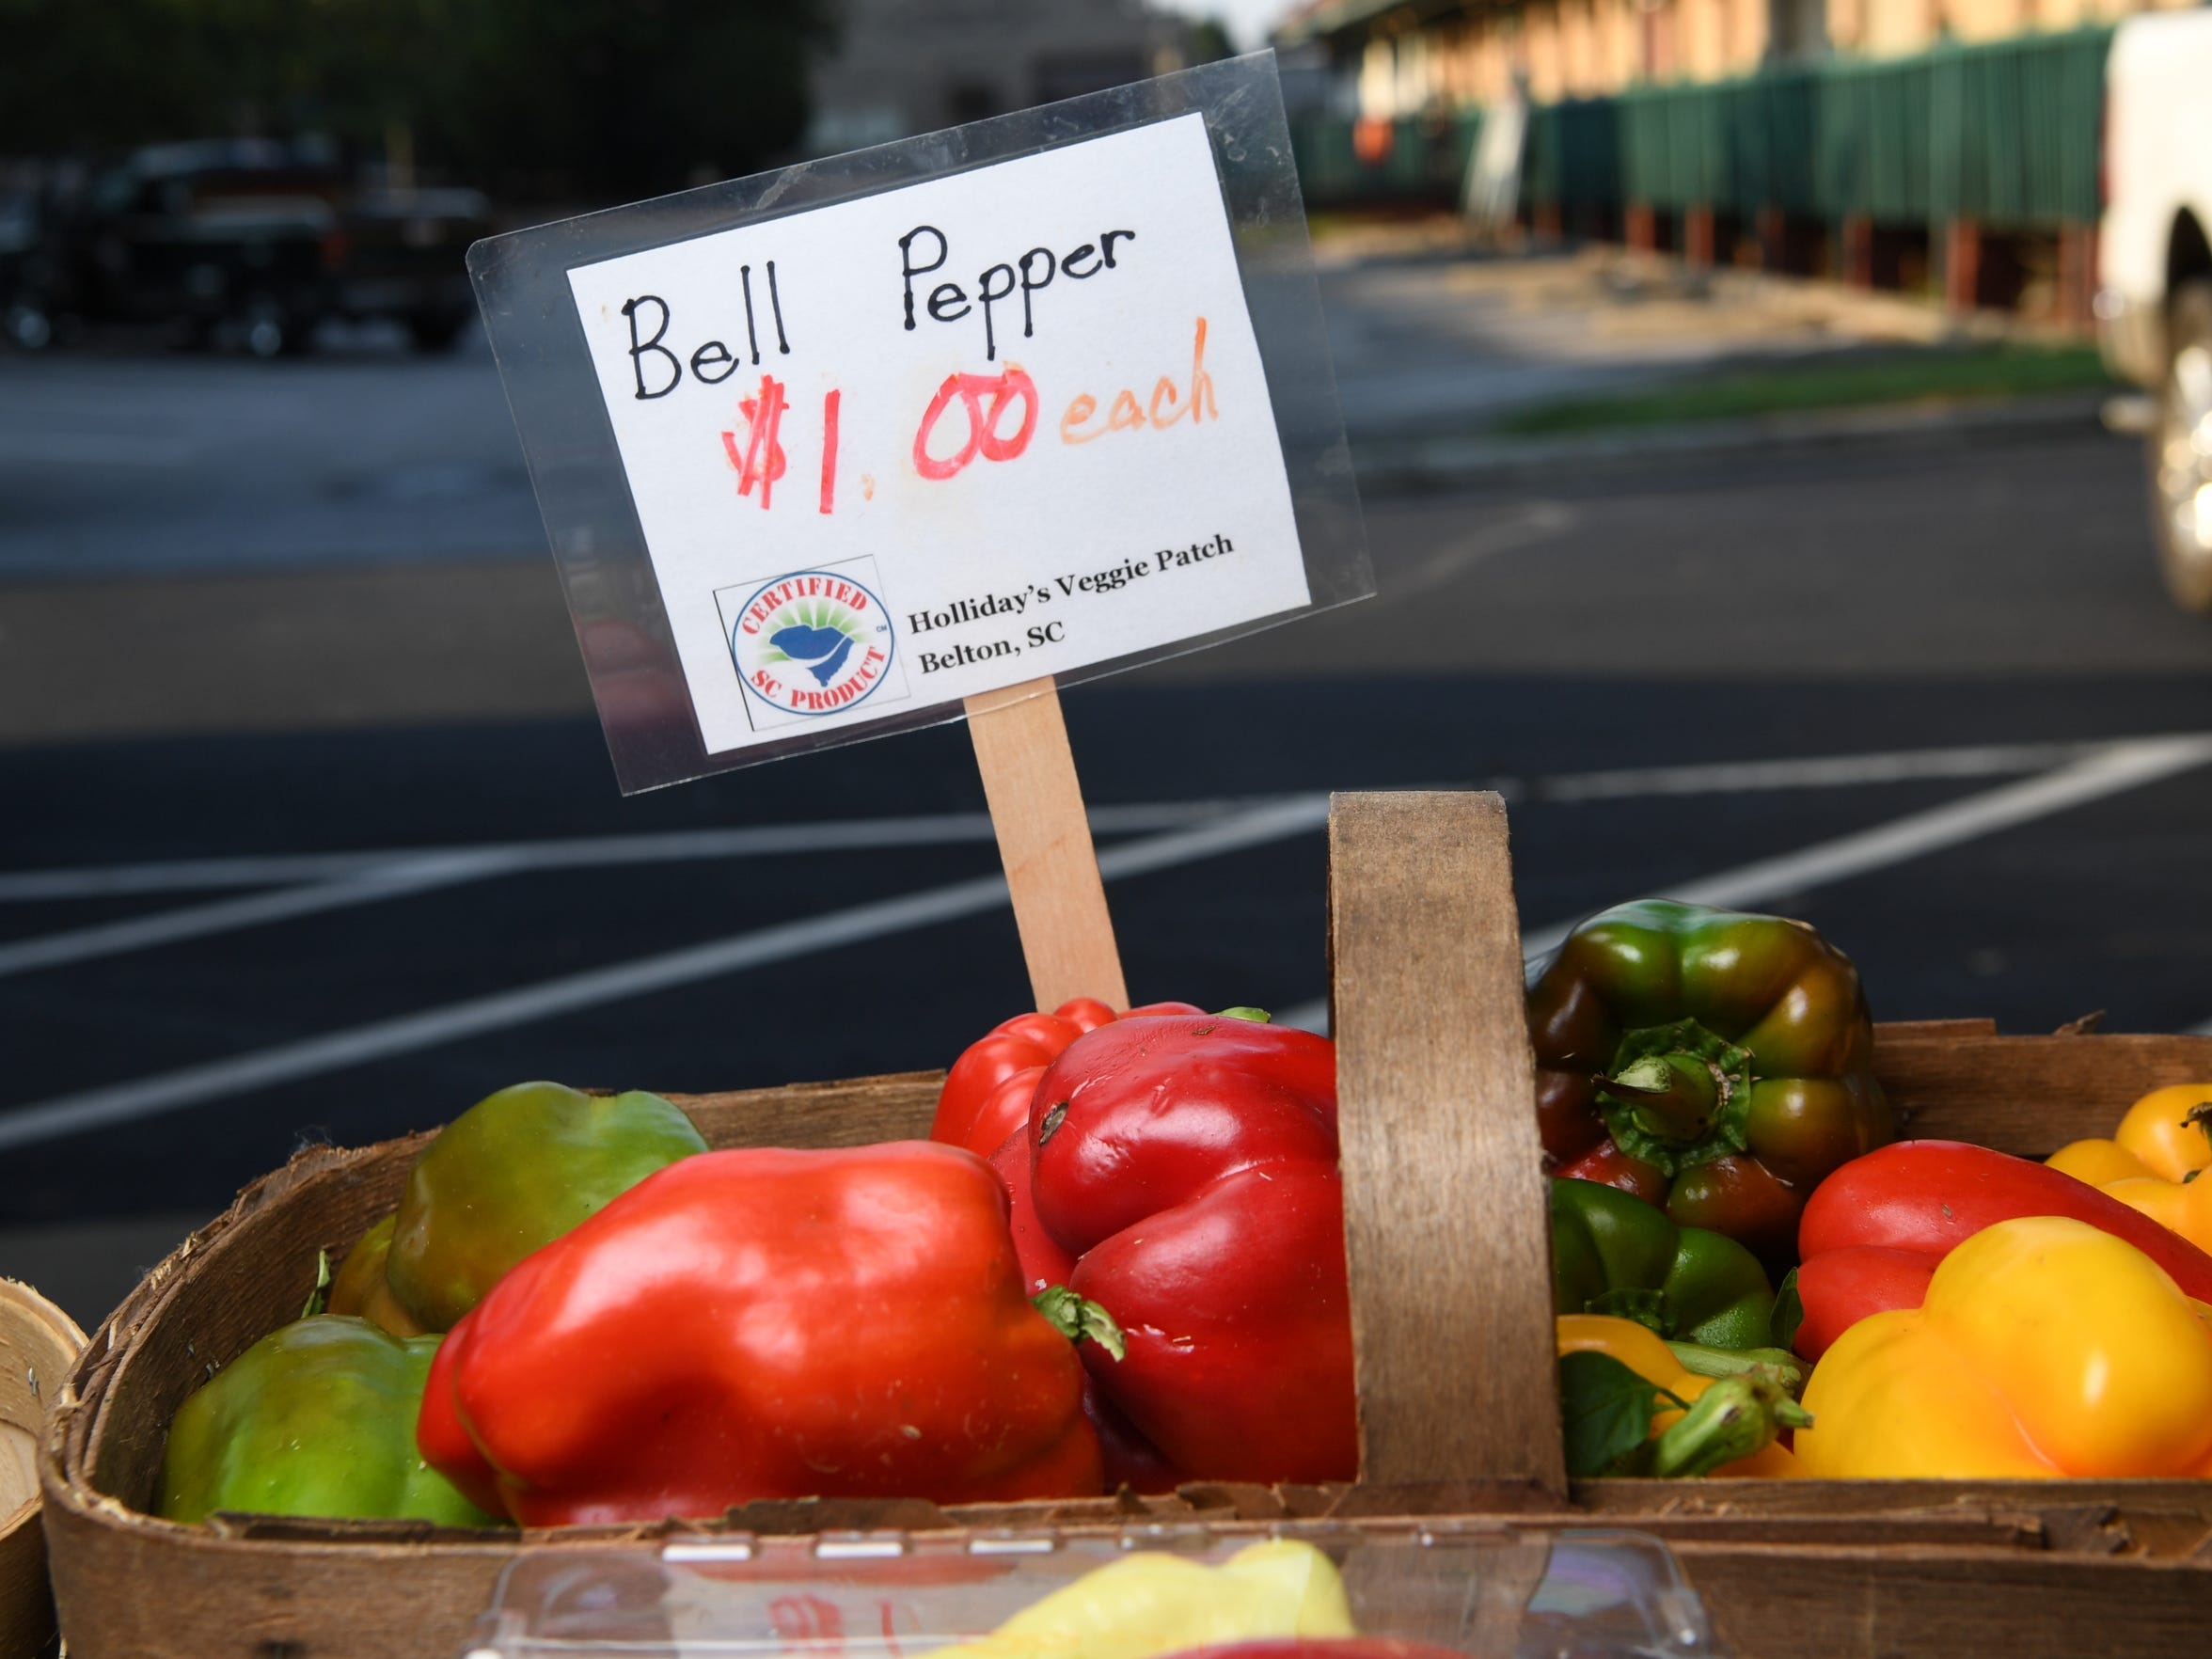 A display of bell peppers grown at Holliday's Veggie Patch in Belton, local farm-grown vegetables for sale during morning activity at the Anderson County Farmer's Market in Anderson in 2017.